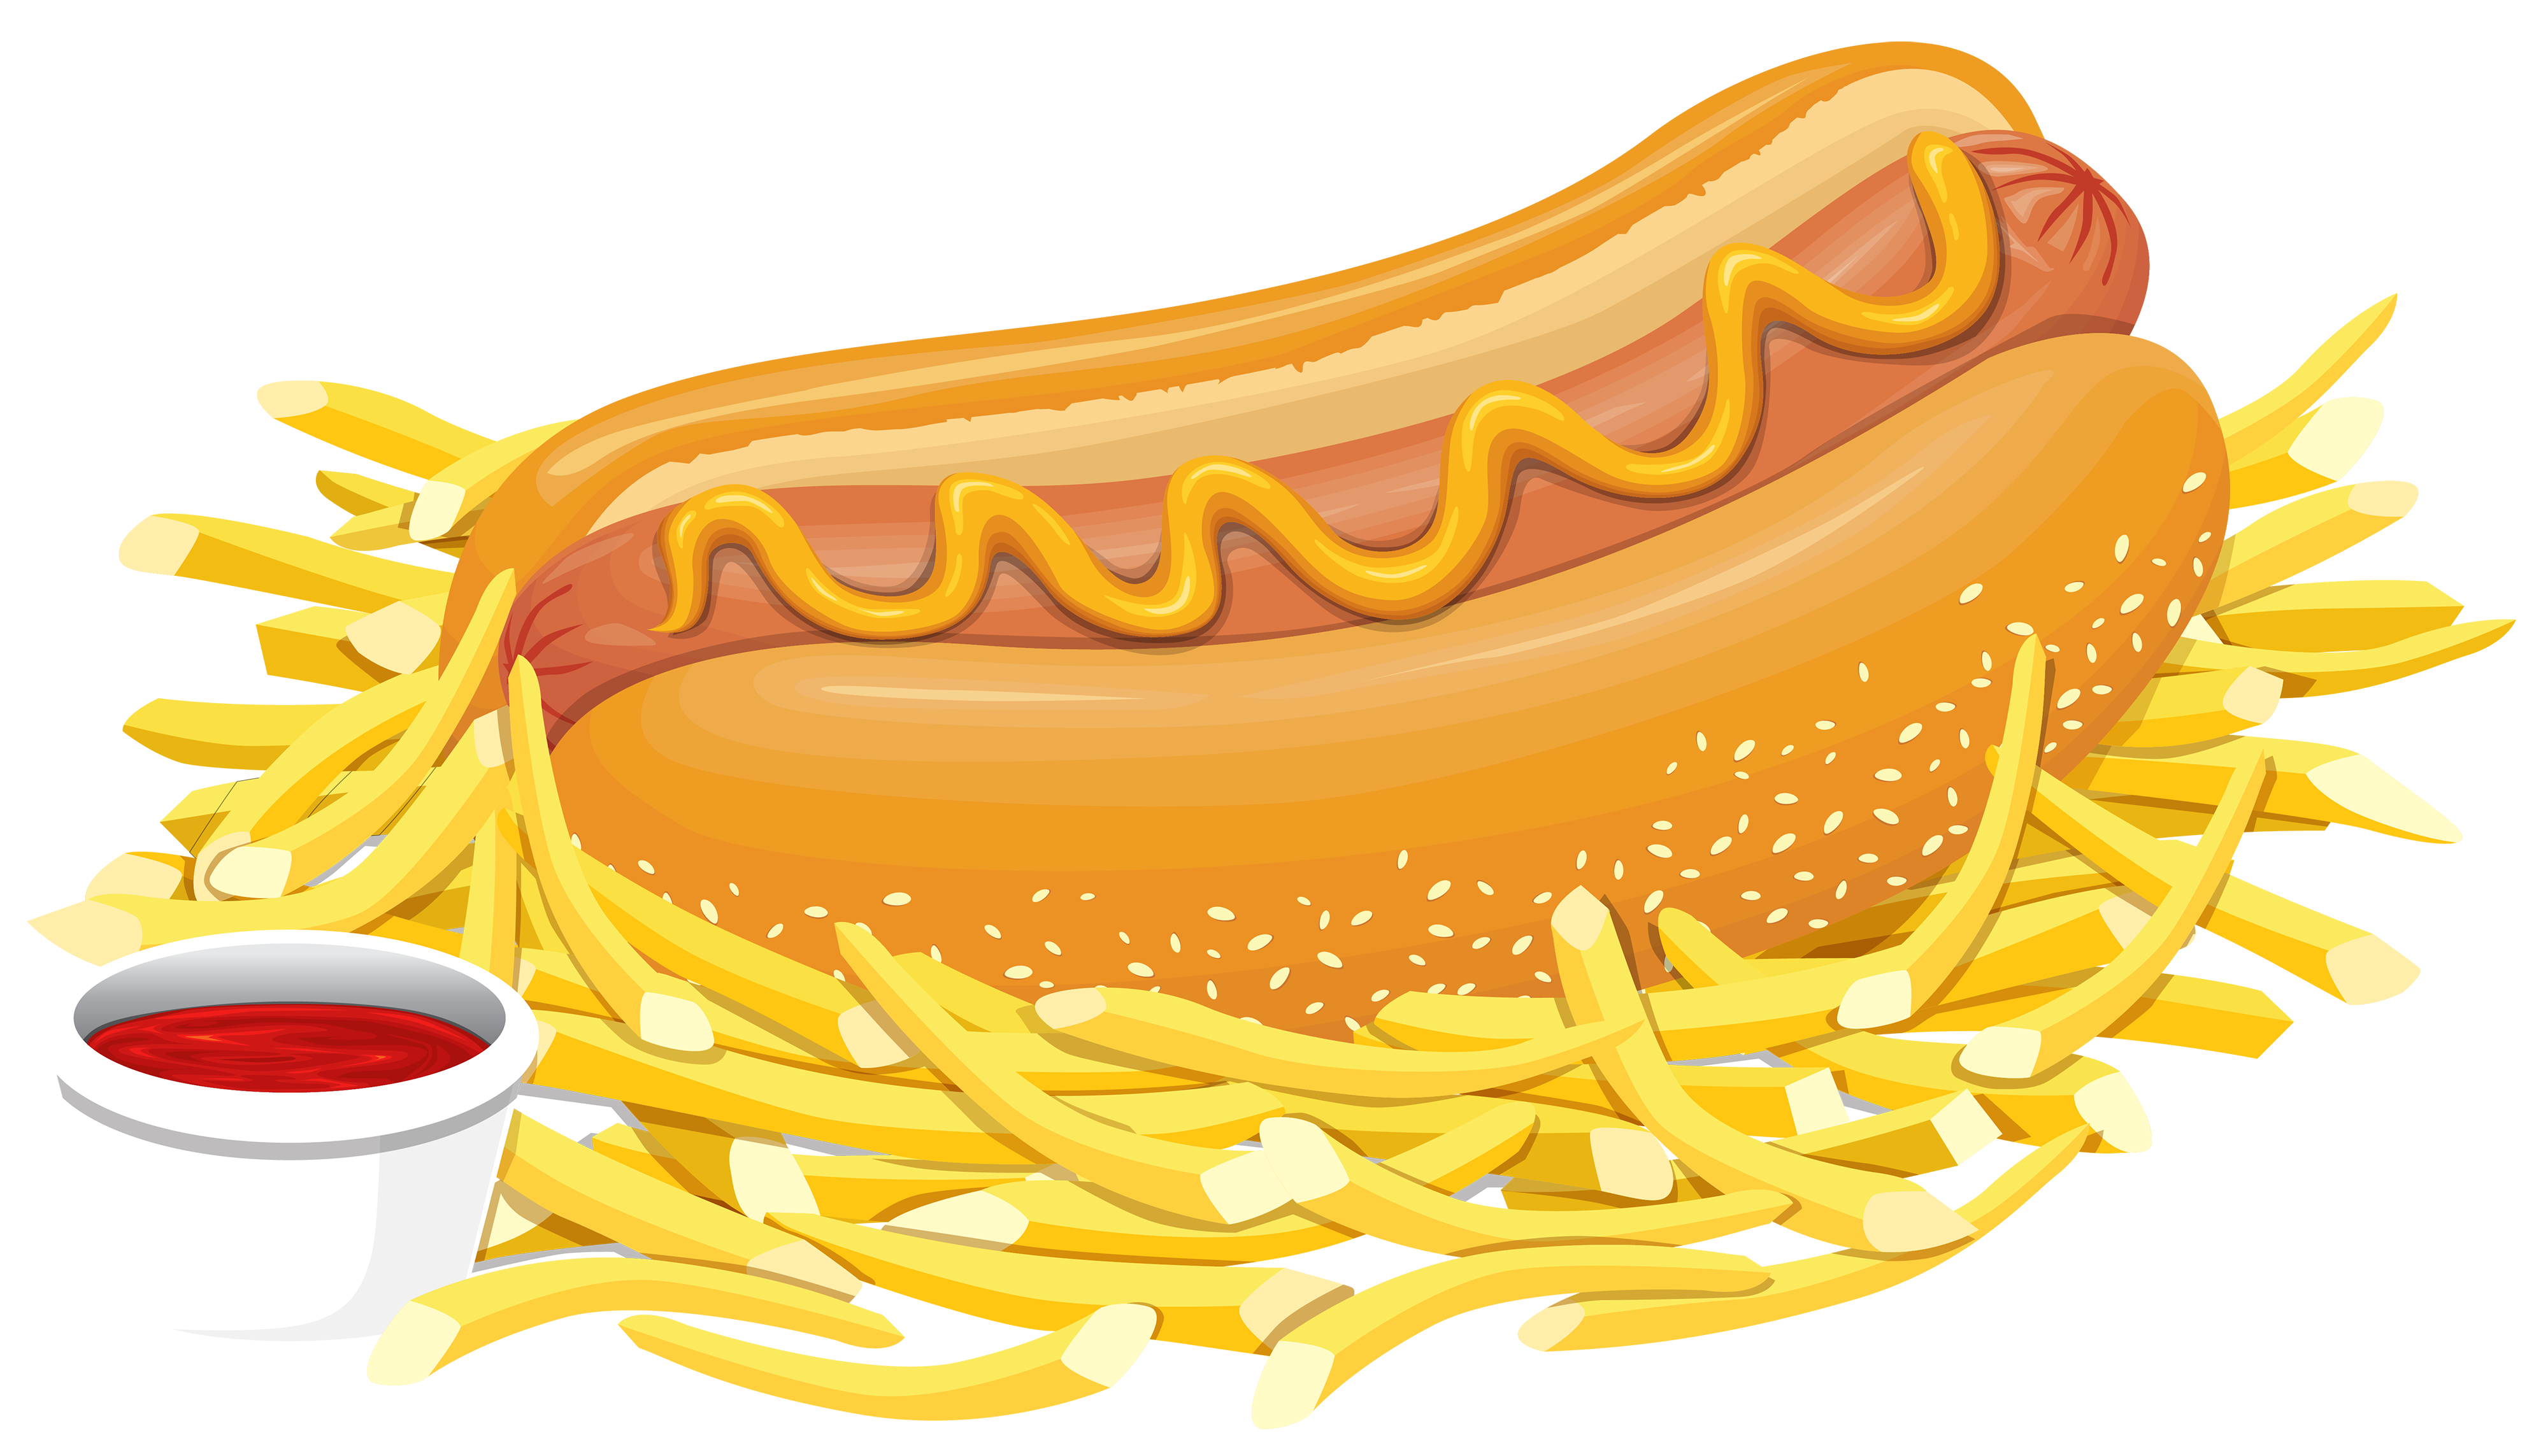 Hot dog with ketchup. Chips clipart png picture freeuse library